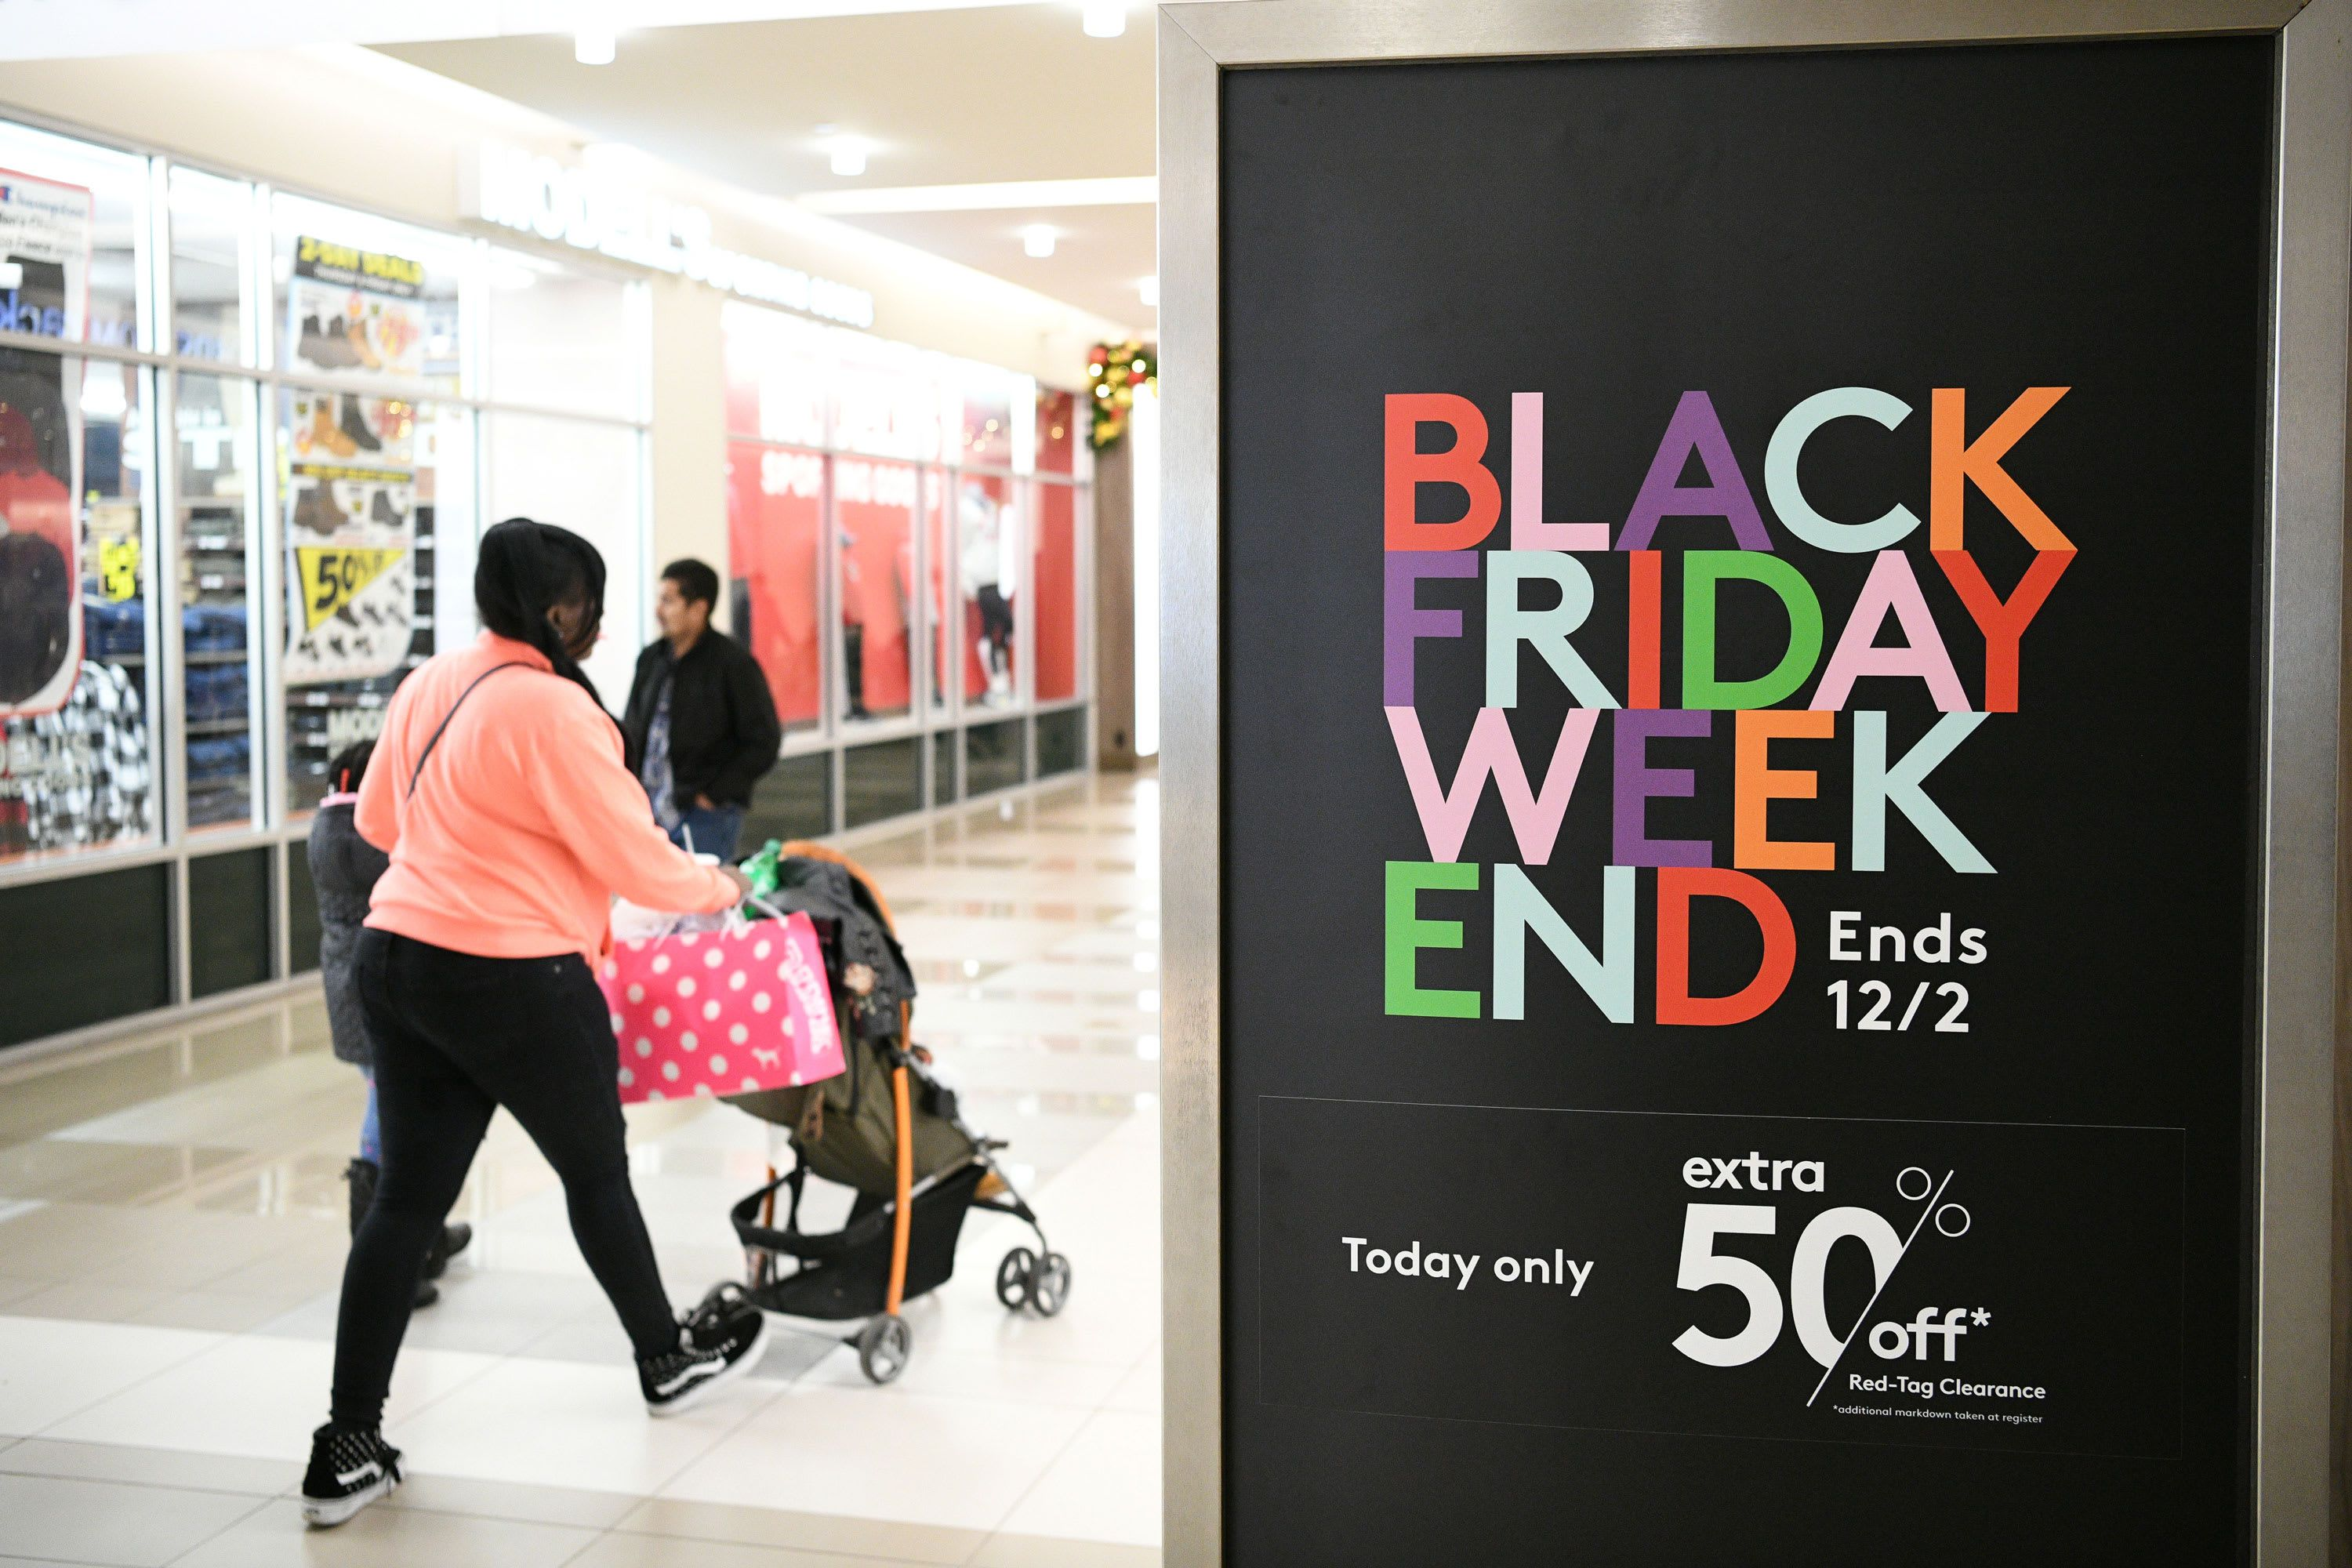 Holiday Crowds At The Mall Will Be Smaller This Year Shoppertrak Predicts As Much As 25 Drop In Shoppers In 2020 Fall Entertaining Black Friday Holiday